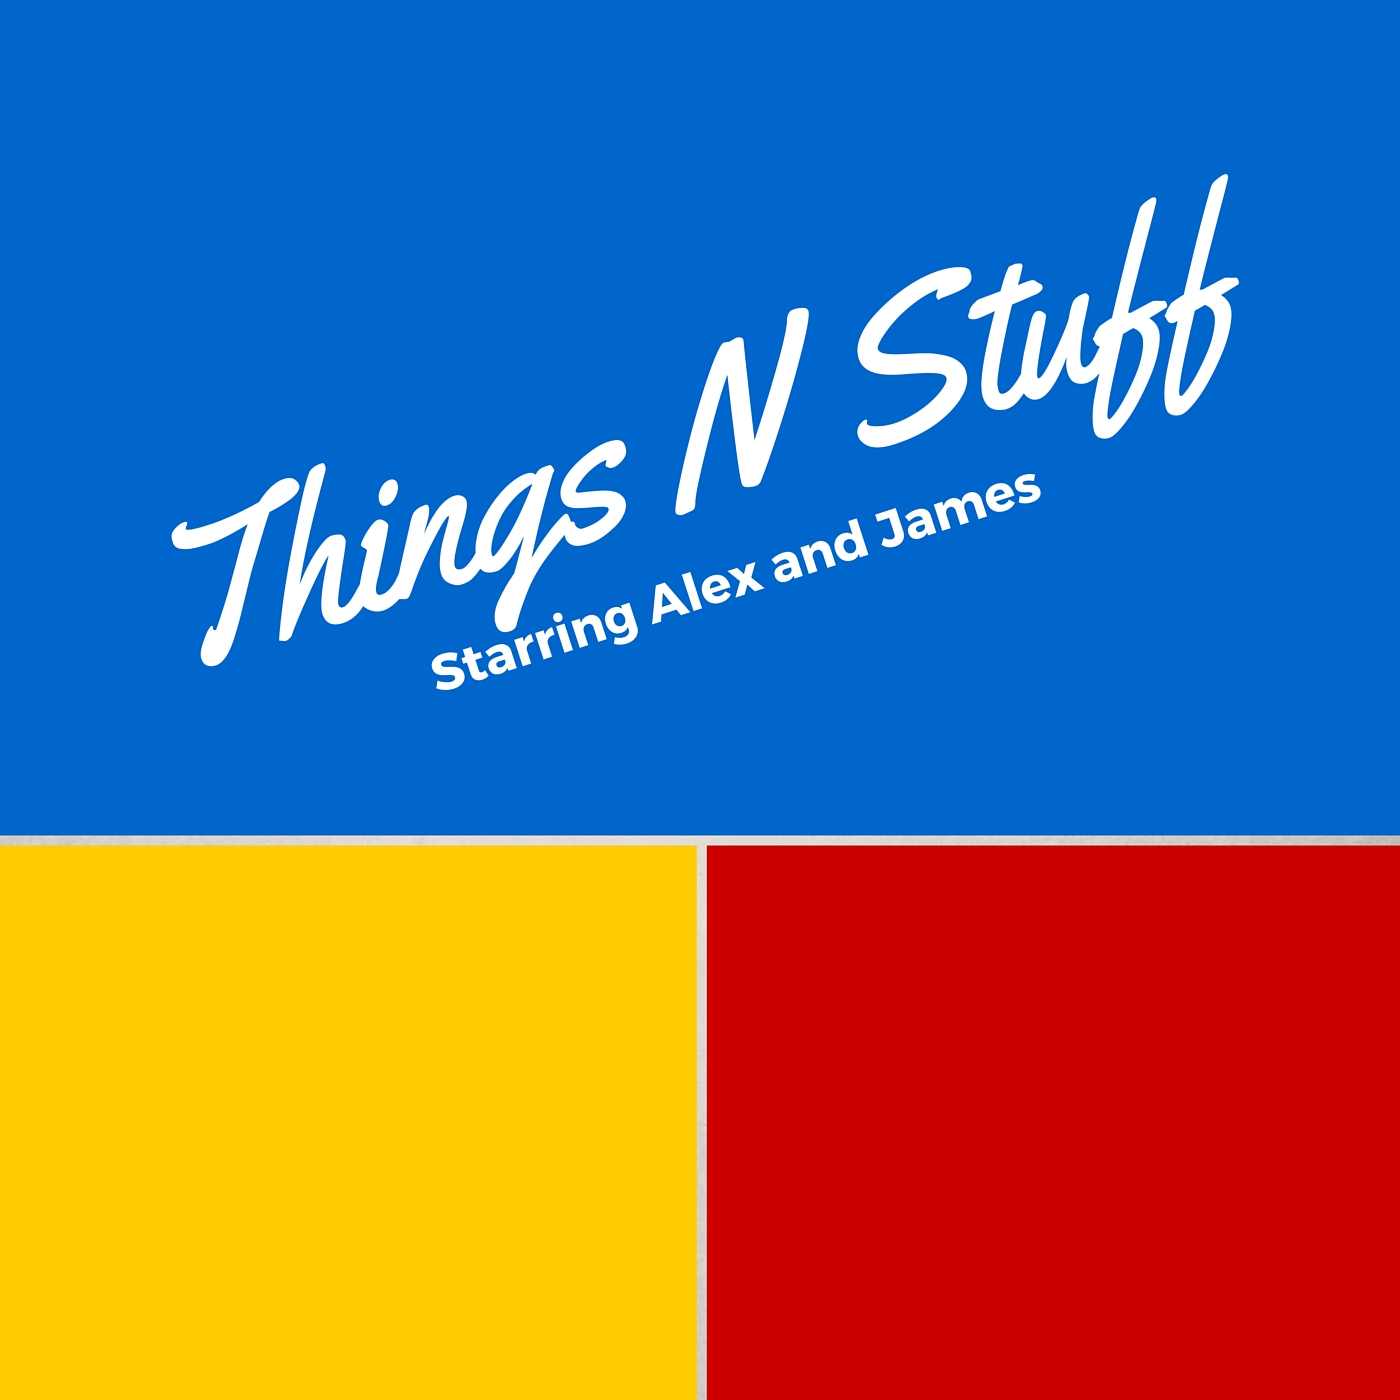 ThingsNStuff